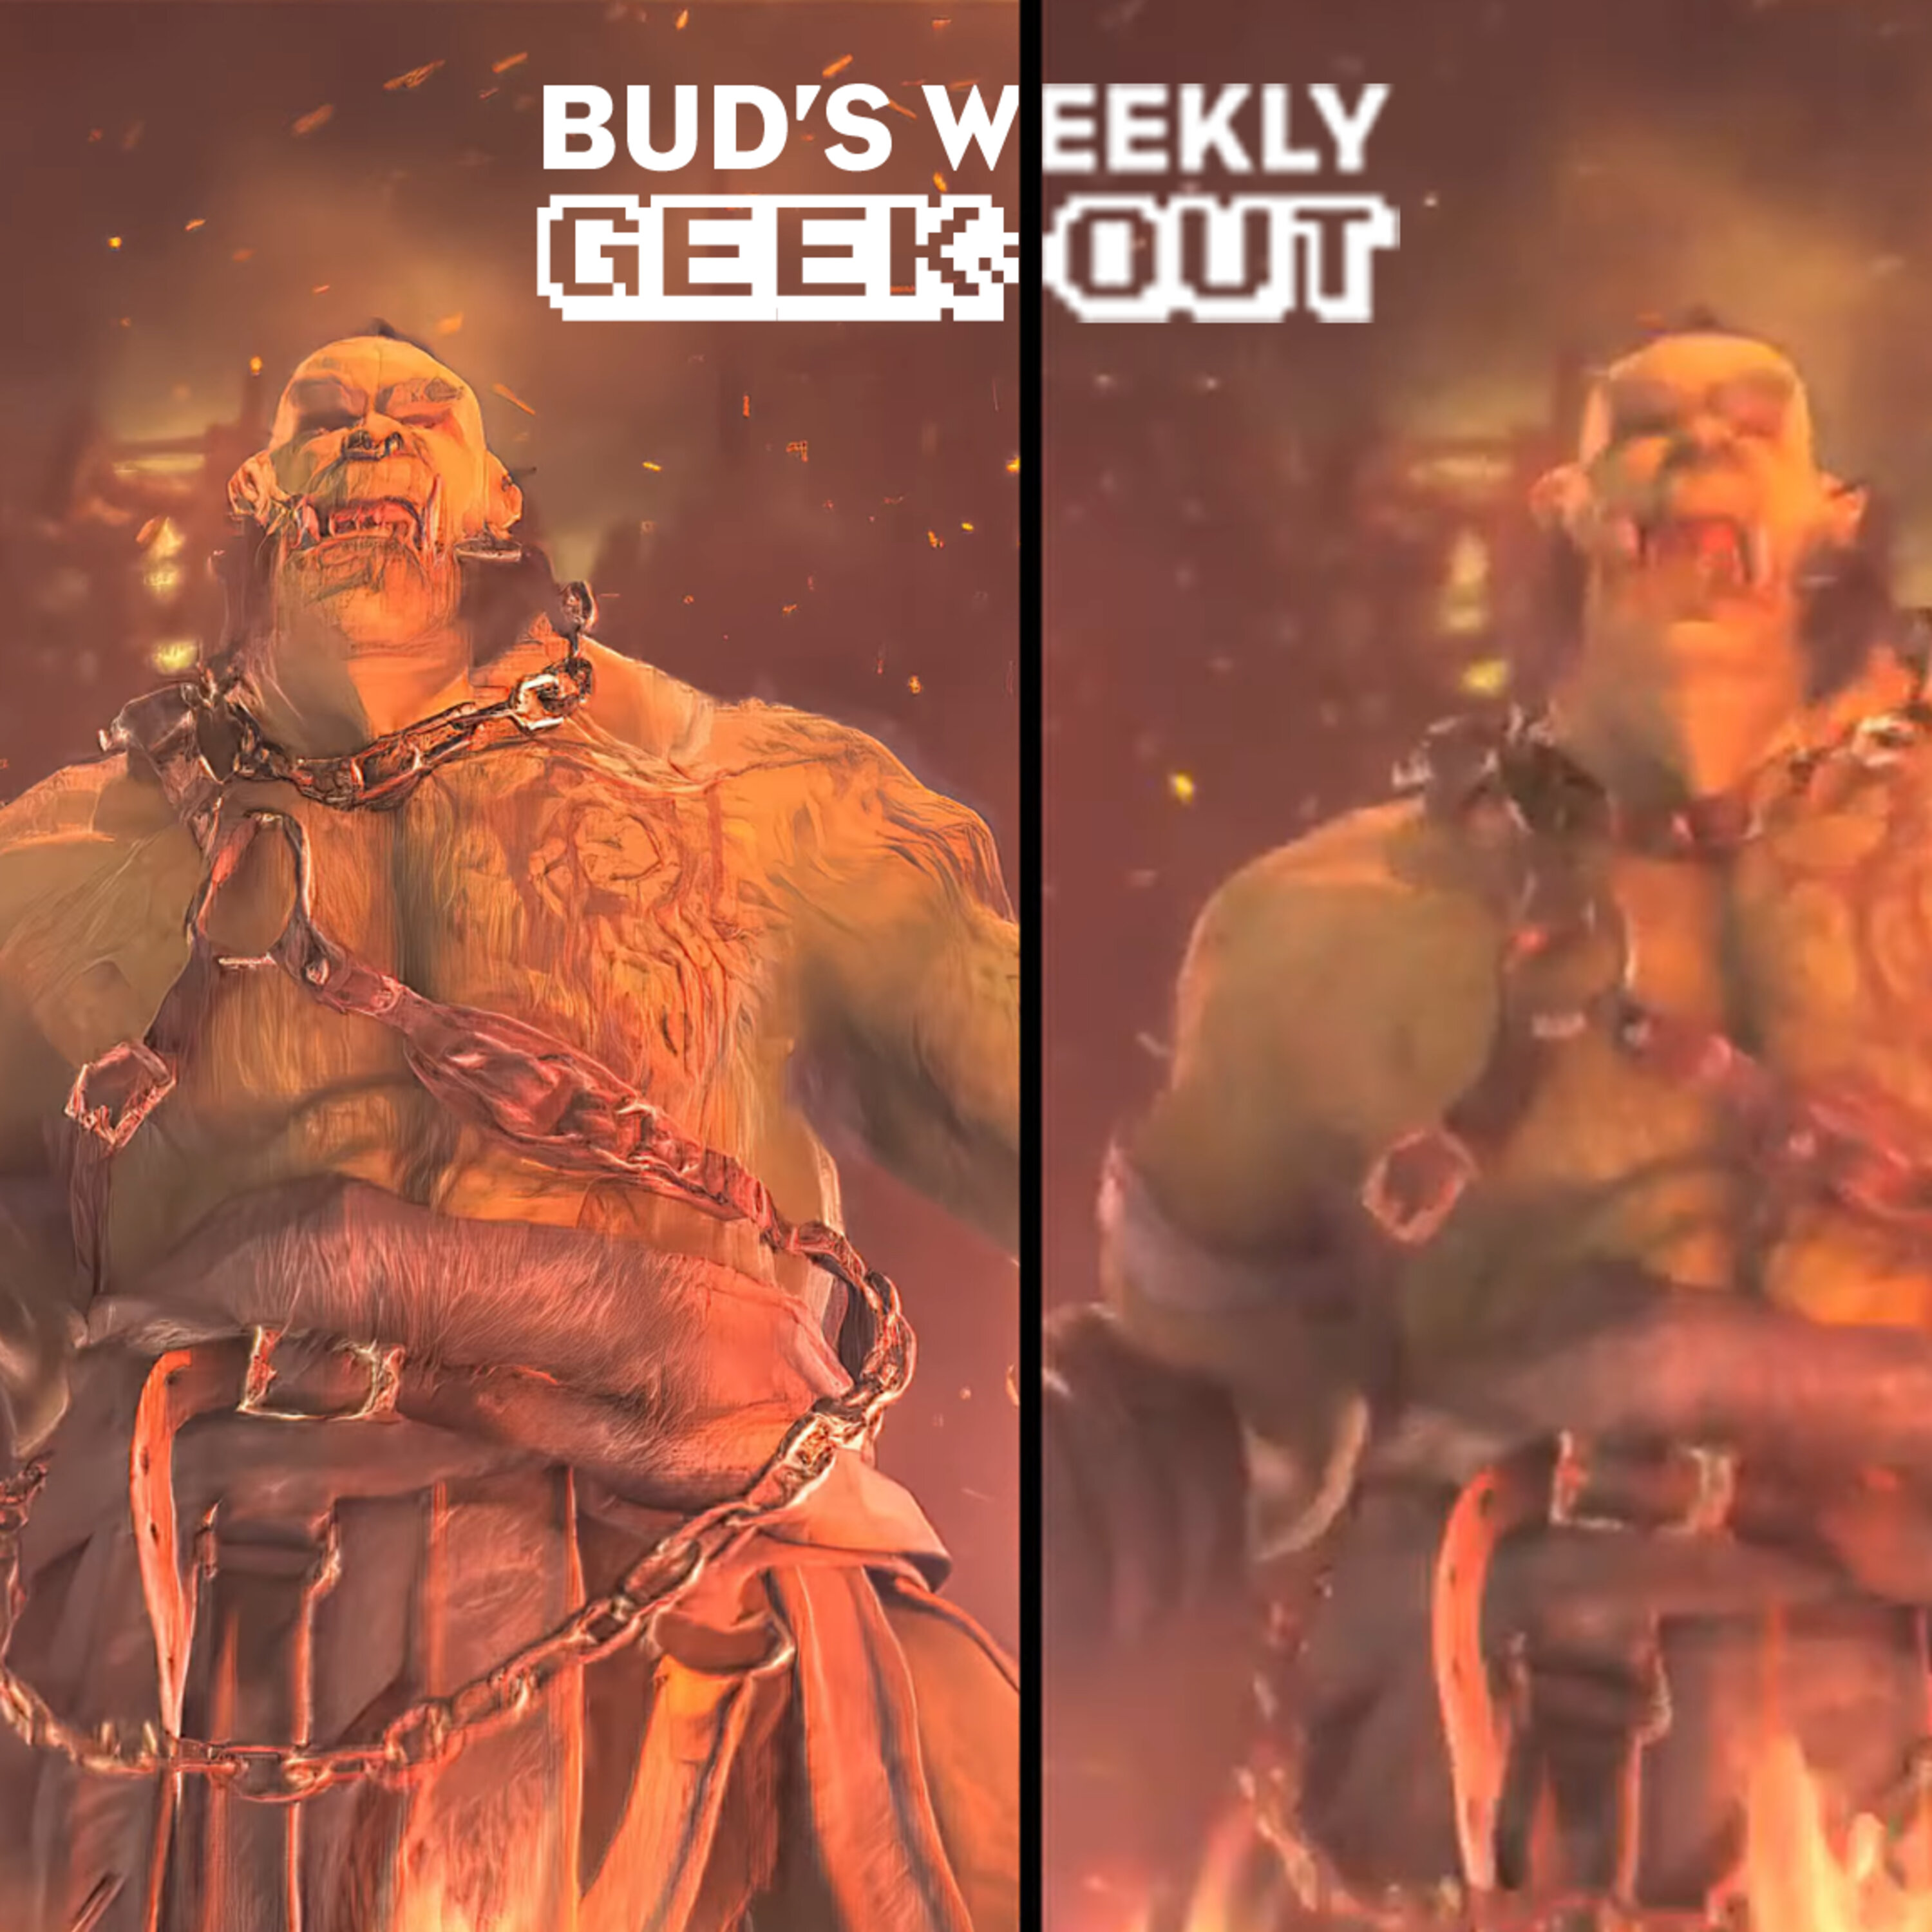 Bud's Weekly Geek-out! 20210728 - Upscale